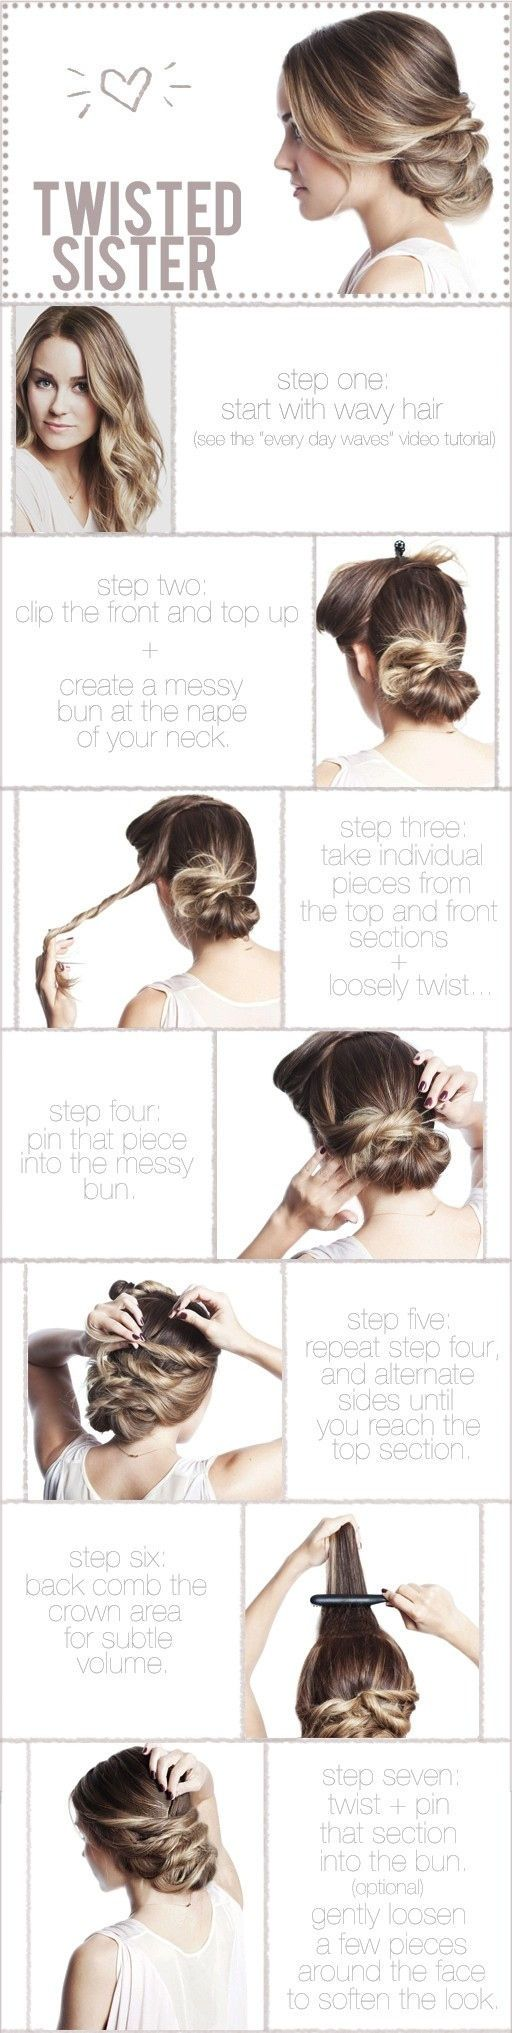 DIY Twisted Updo Hairstyle DIY Projects